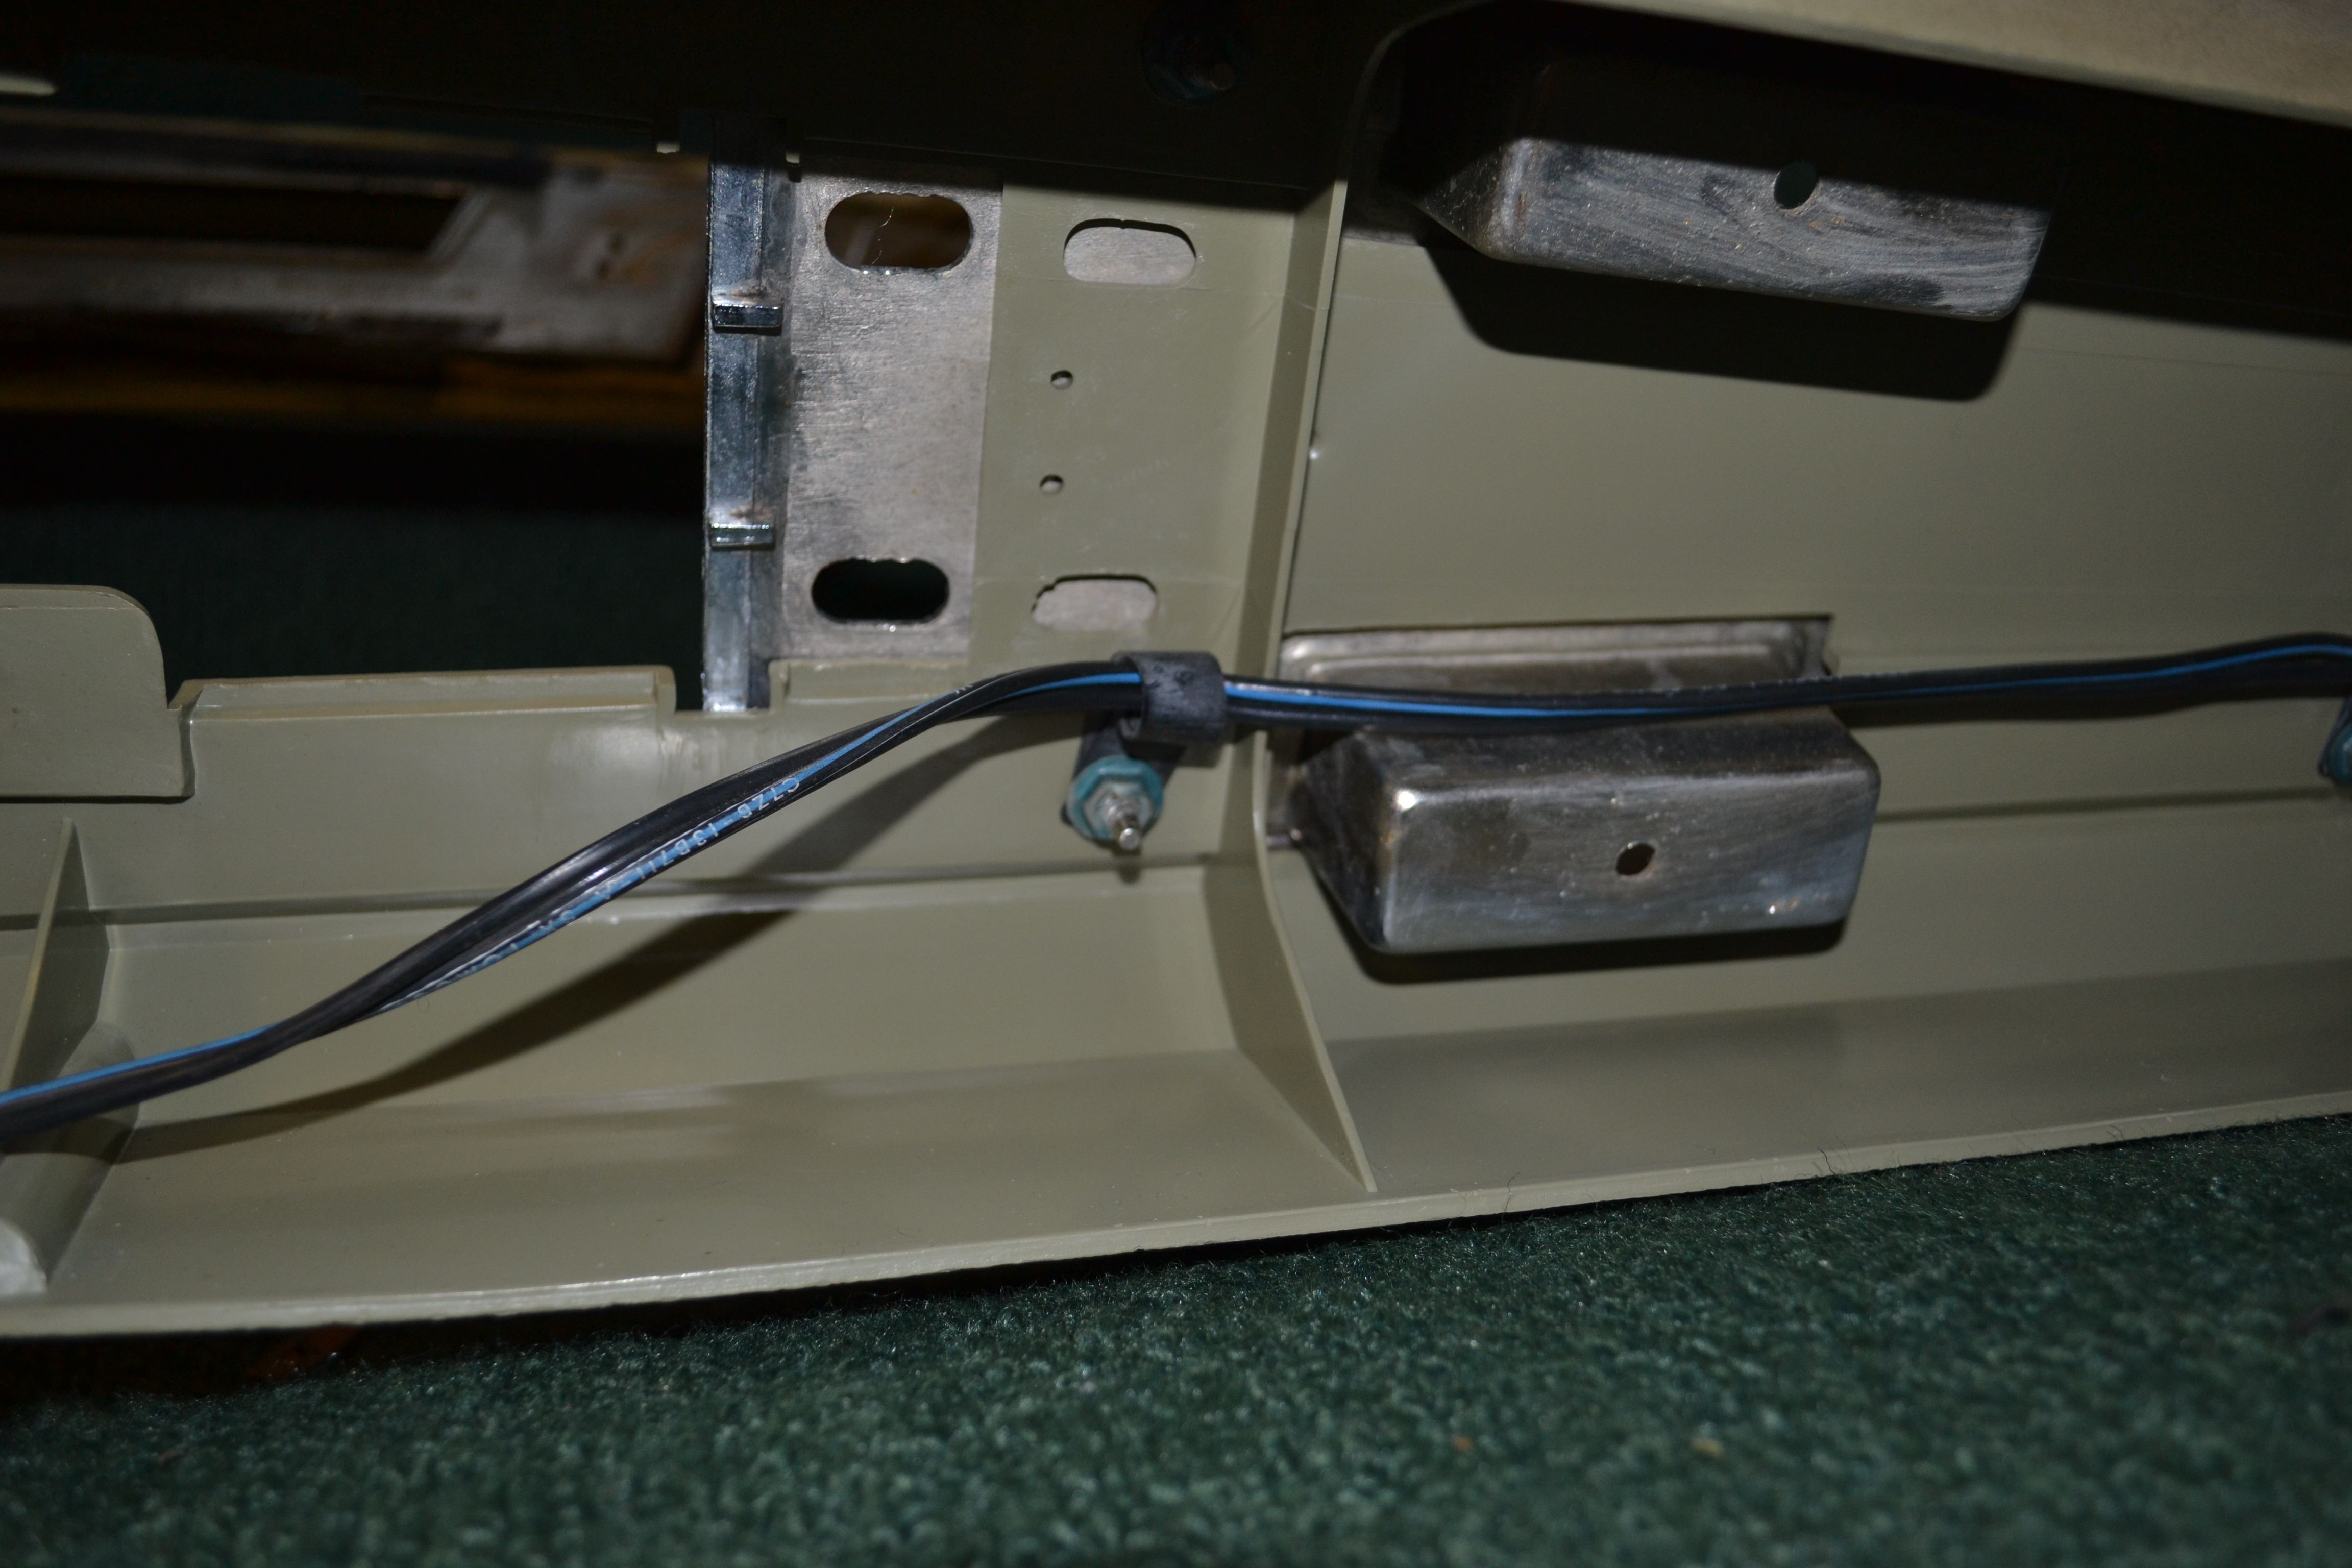 wiring harness under the console. Consoles, Console